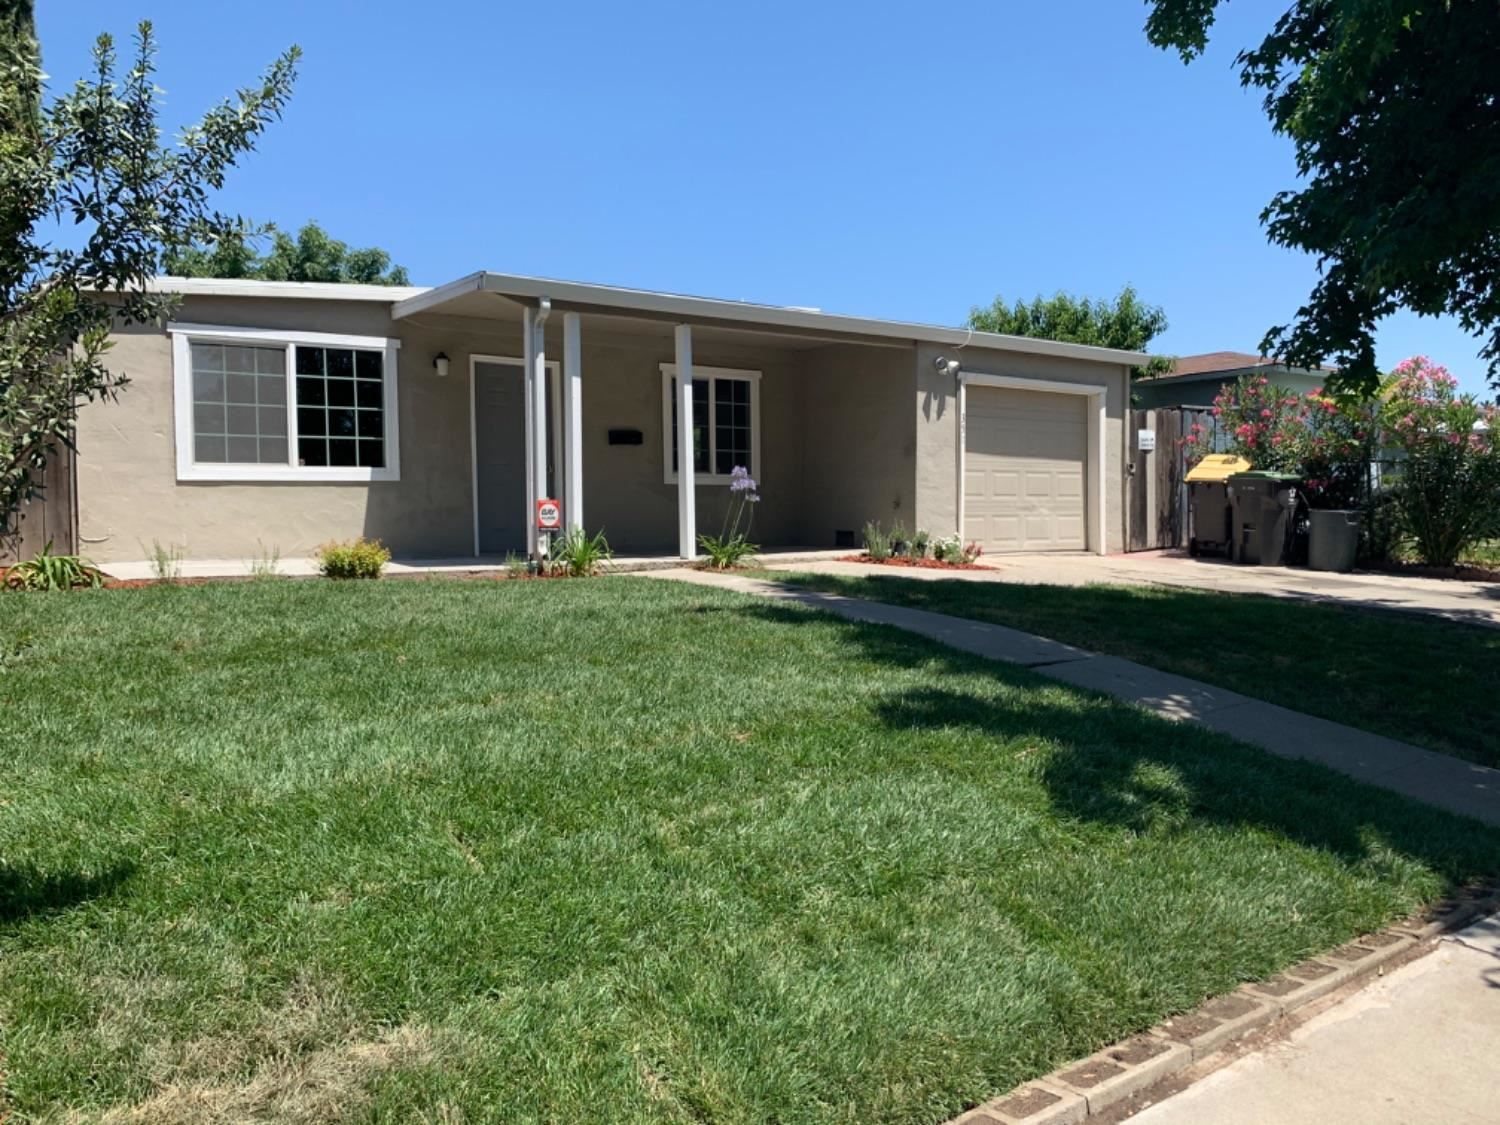 351 West 4th Street, Stockton, CA 95206 - #: 20031773